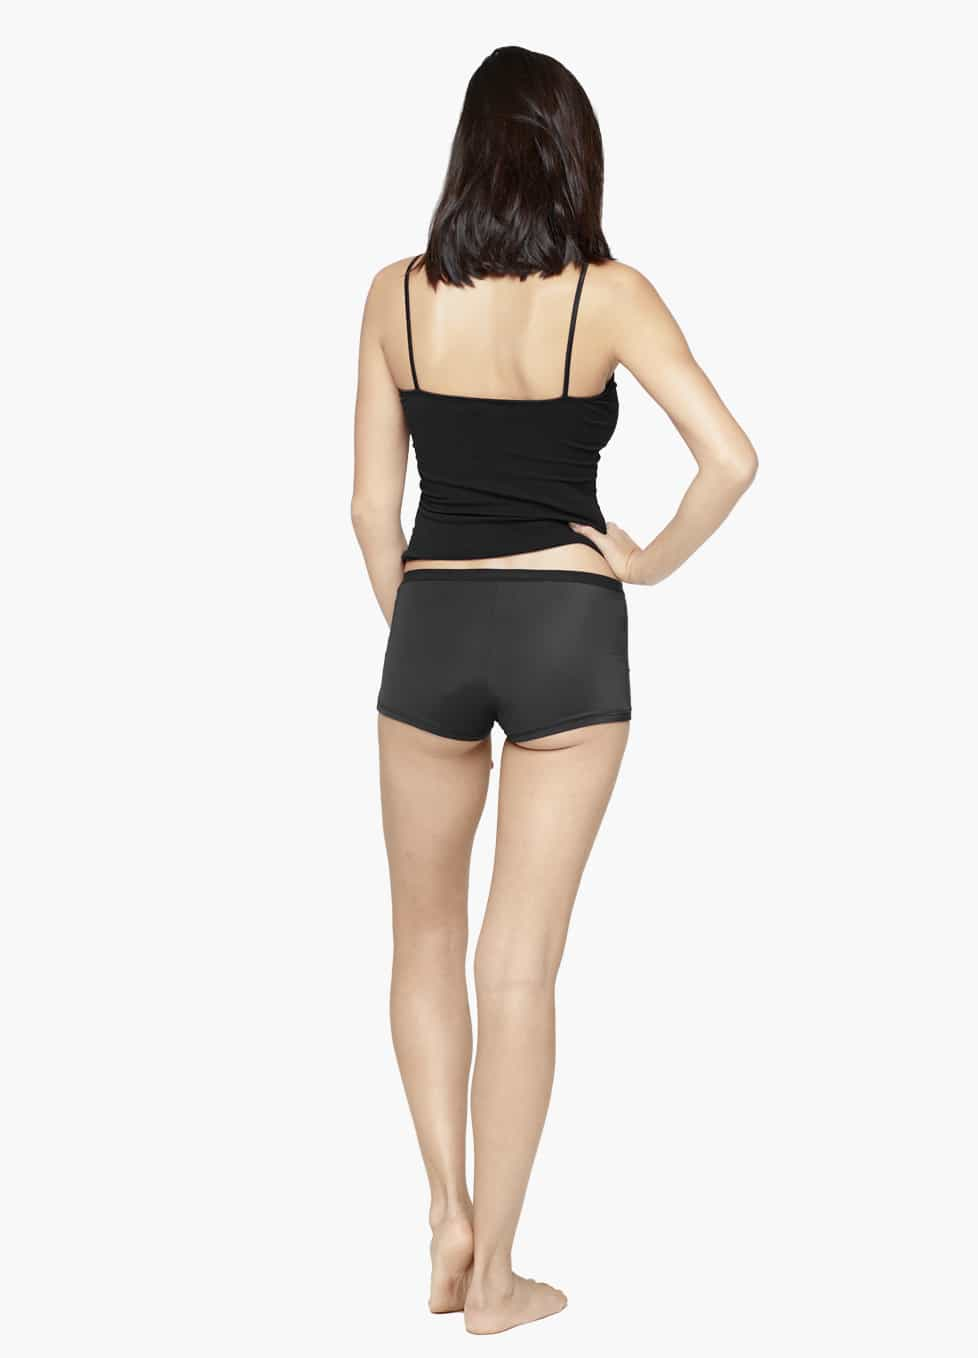 Thinx Sport (Pressefoto von Thinx)